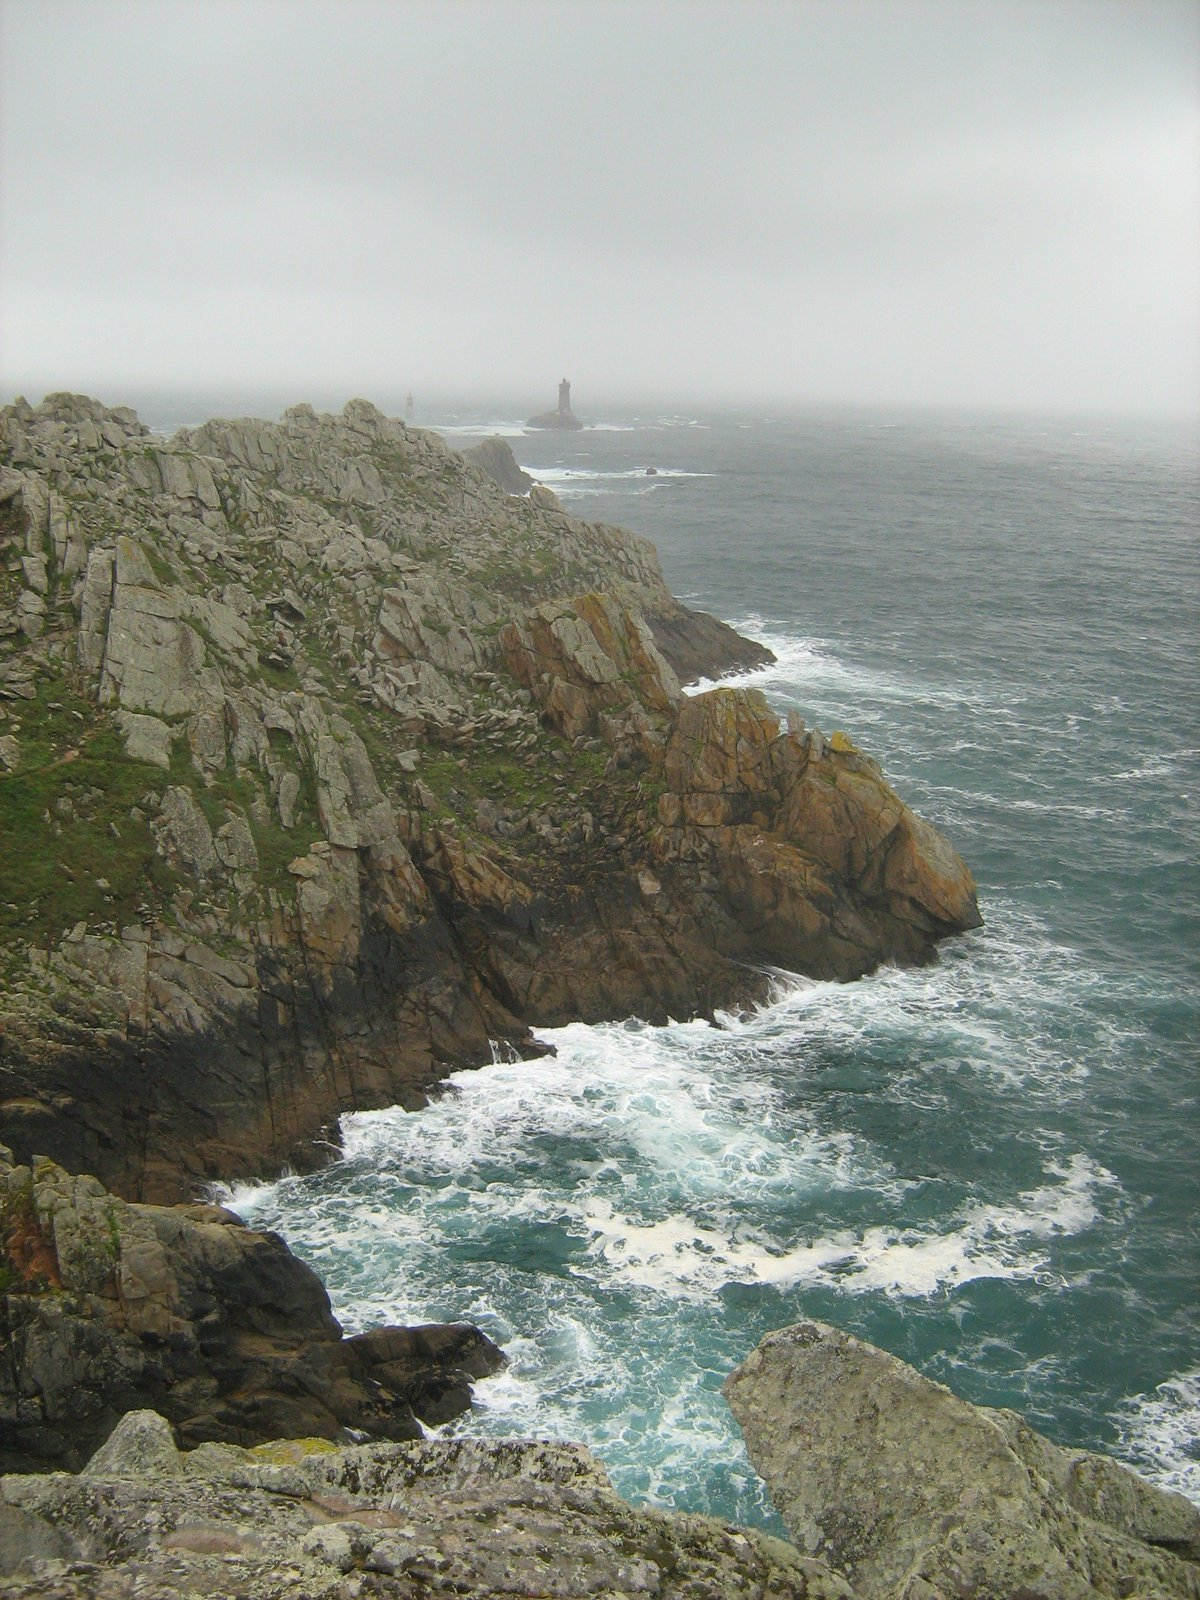 Pointe de Raz, the end of the world